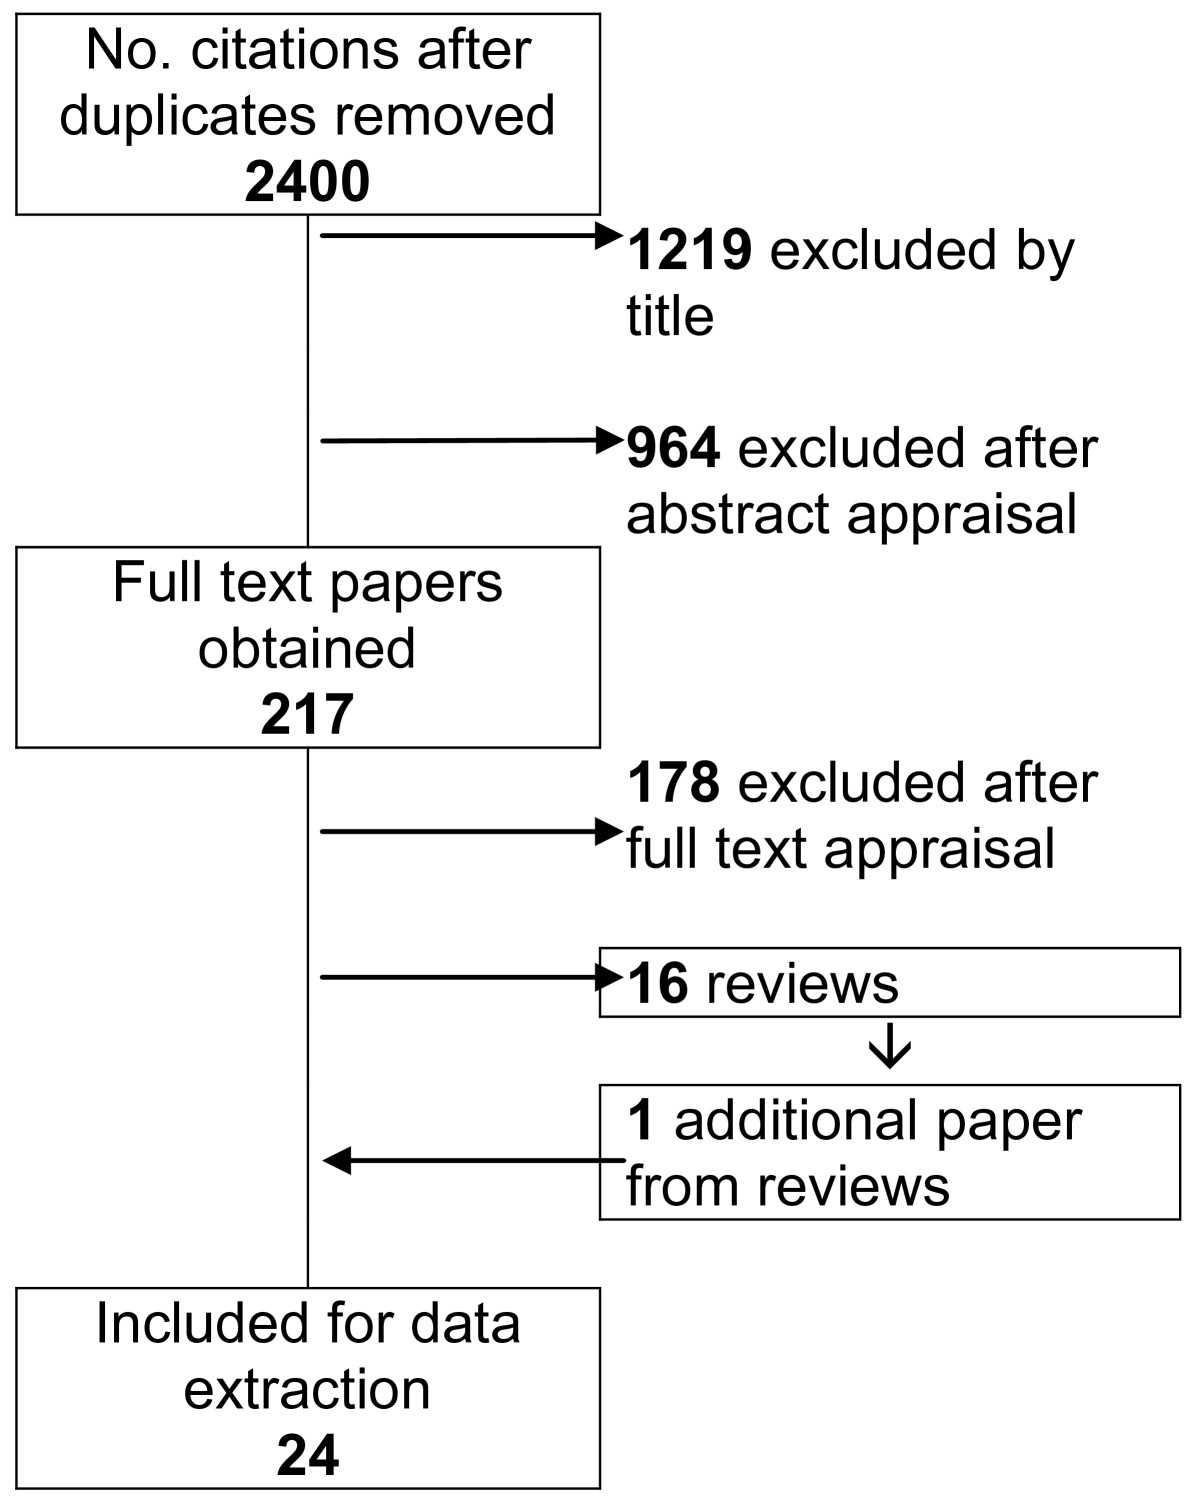 https://static-content.springer.com/image/art%3A10.1186%2F1471-2458-10-459/MediaObjects/12889_2009_Article_2370_Fig1_HTML.jpg